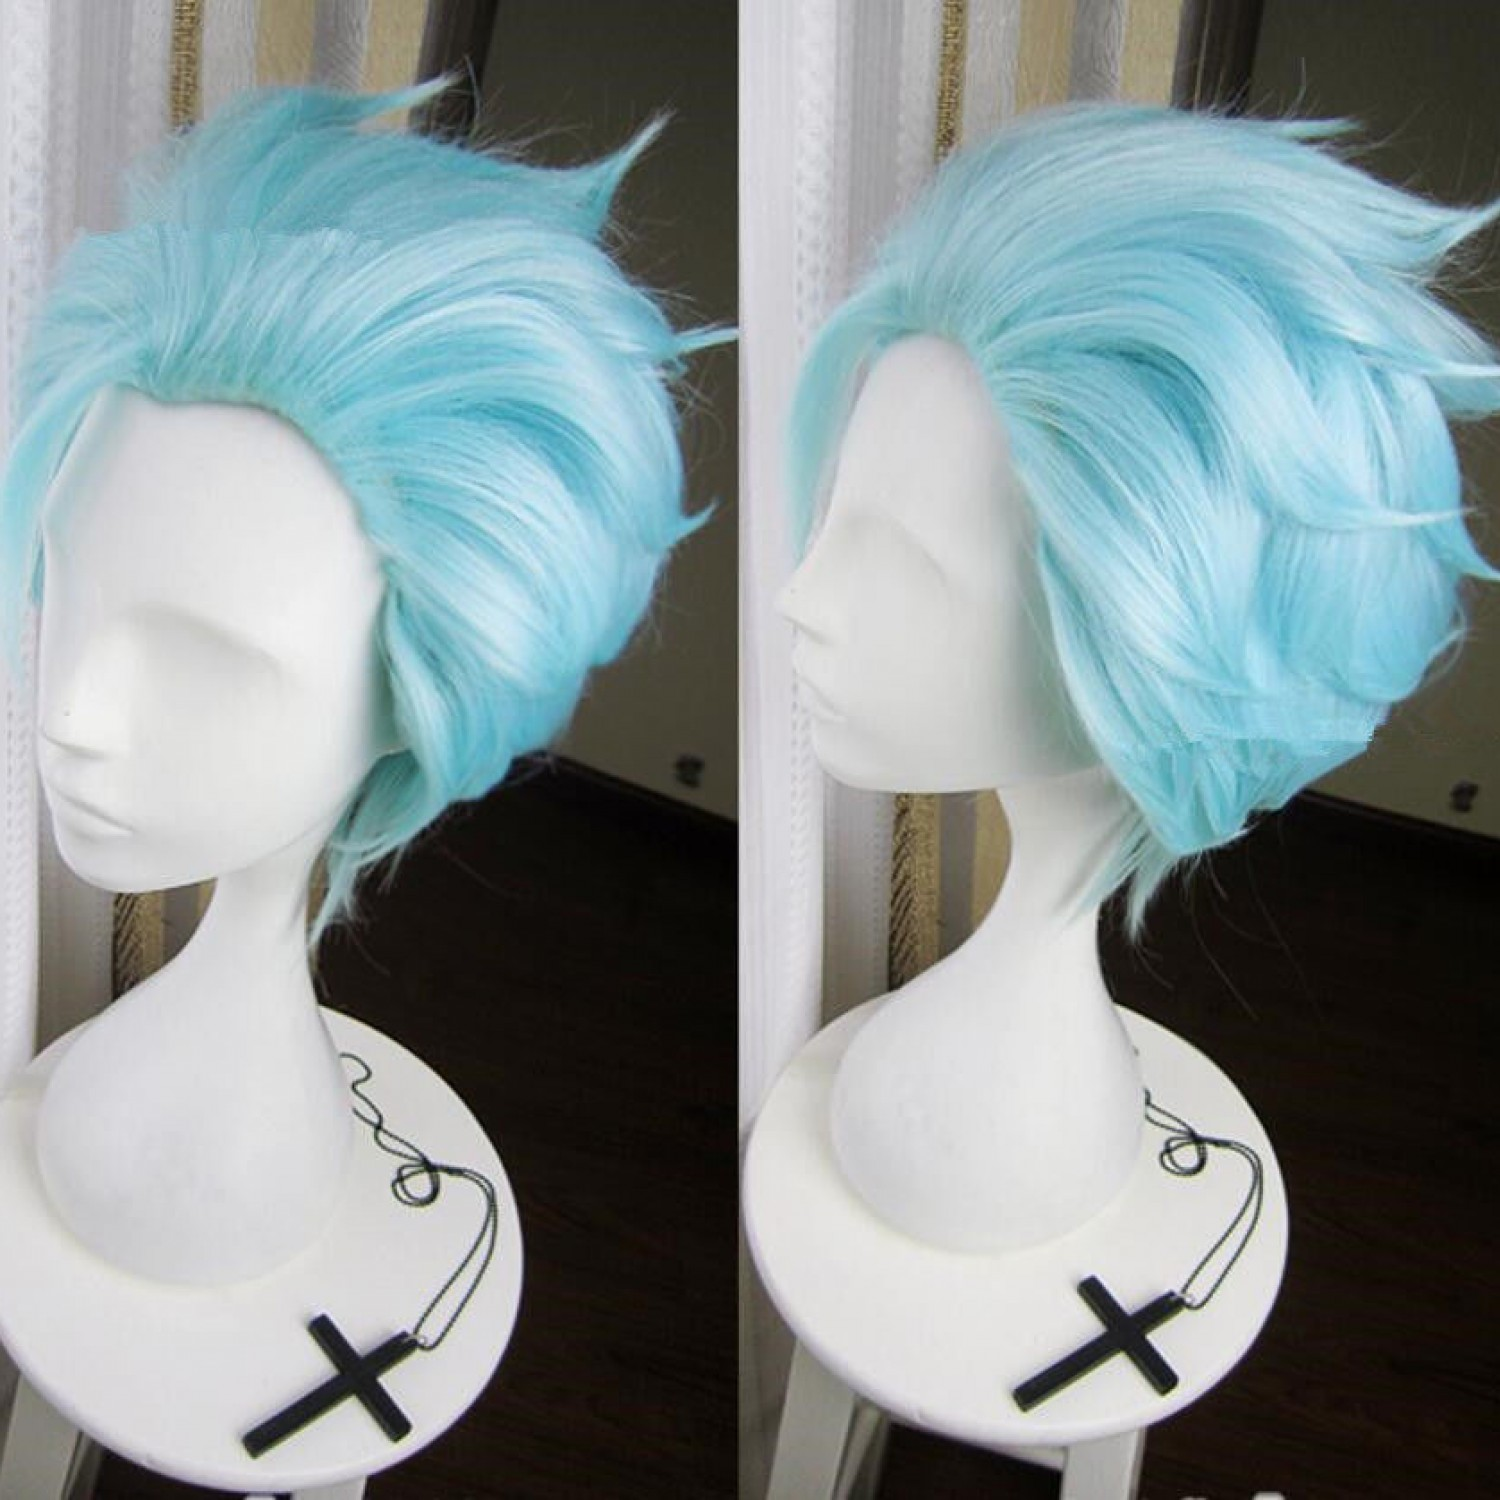 The Seven Deadly Sins Fox's Sin of Greed Ban Cosplay Wig